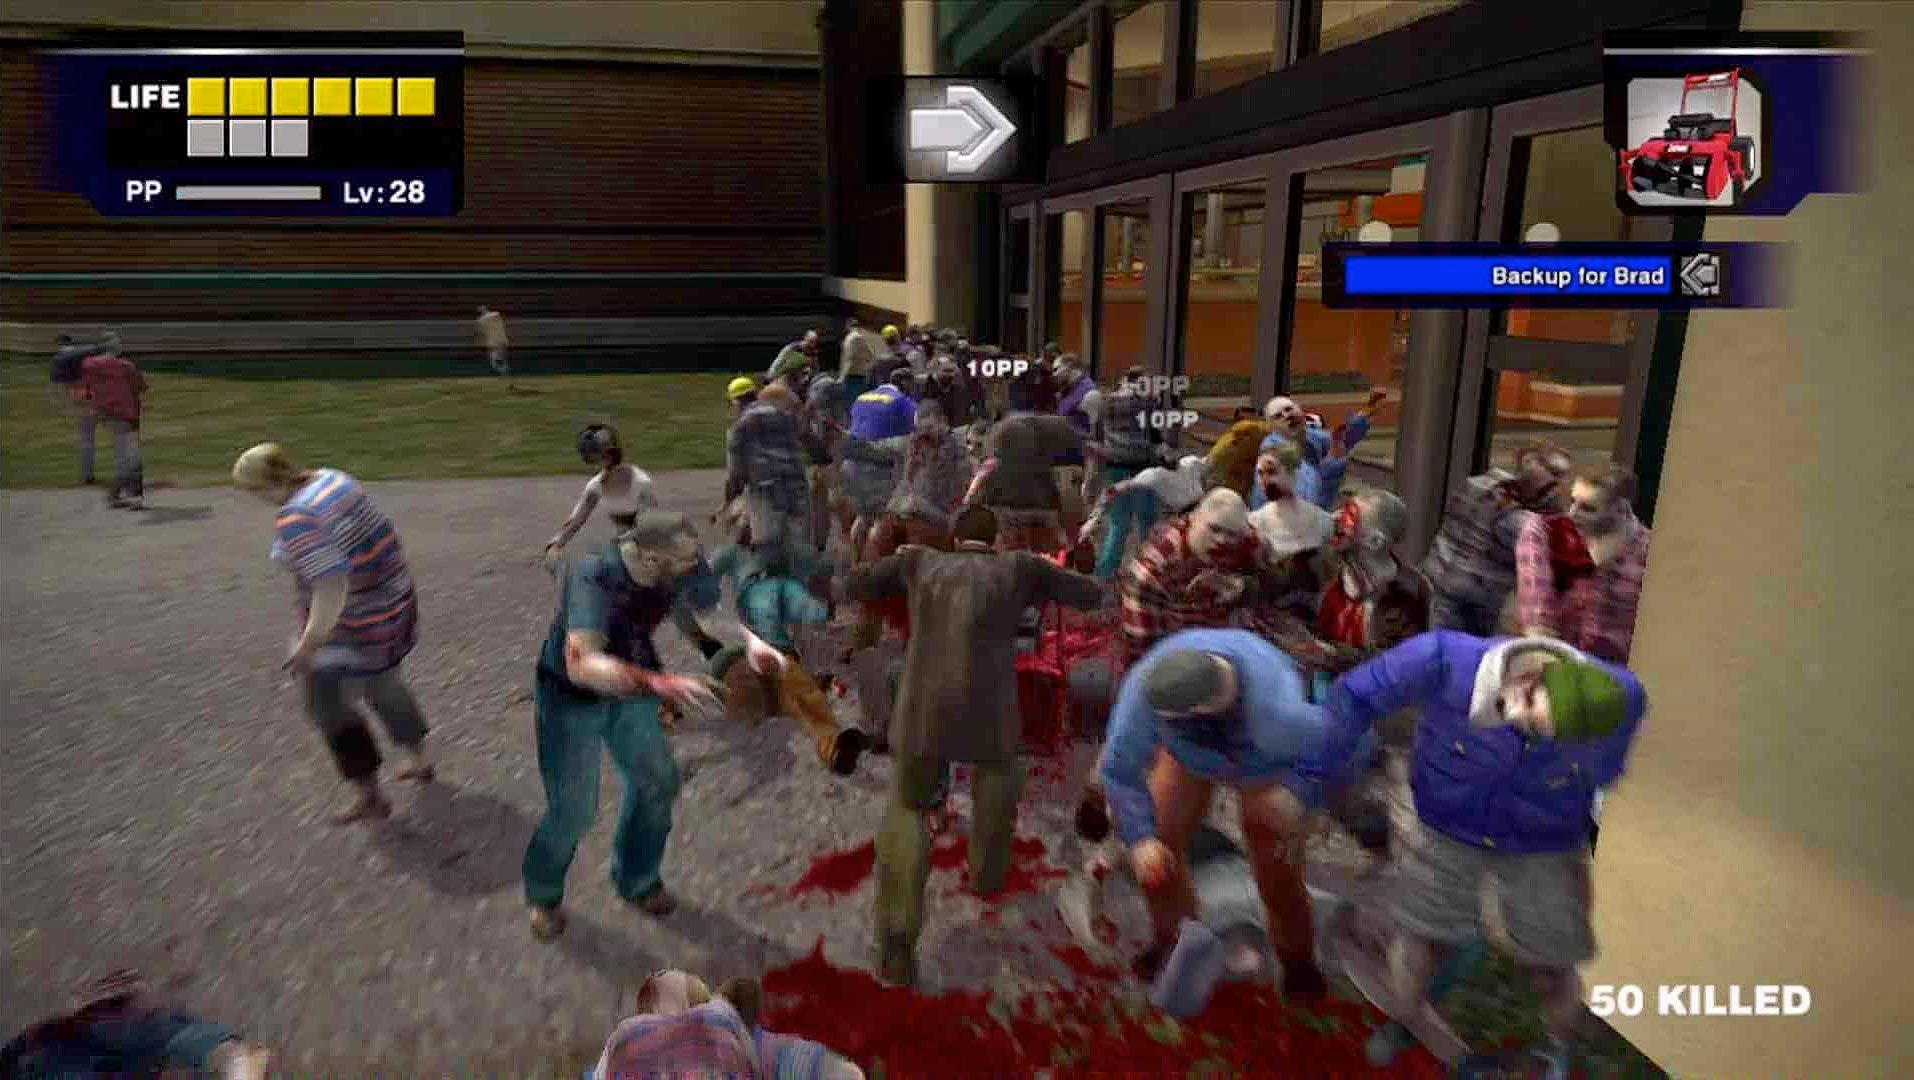 One of the many, many ways to kill zombies in this game